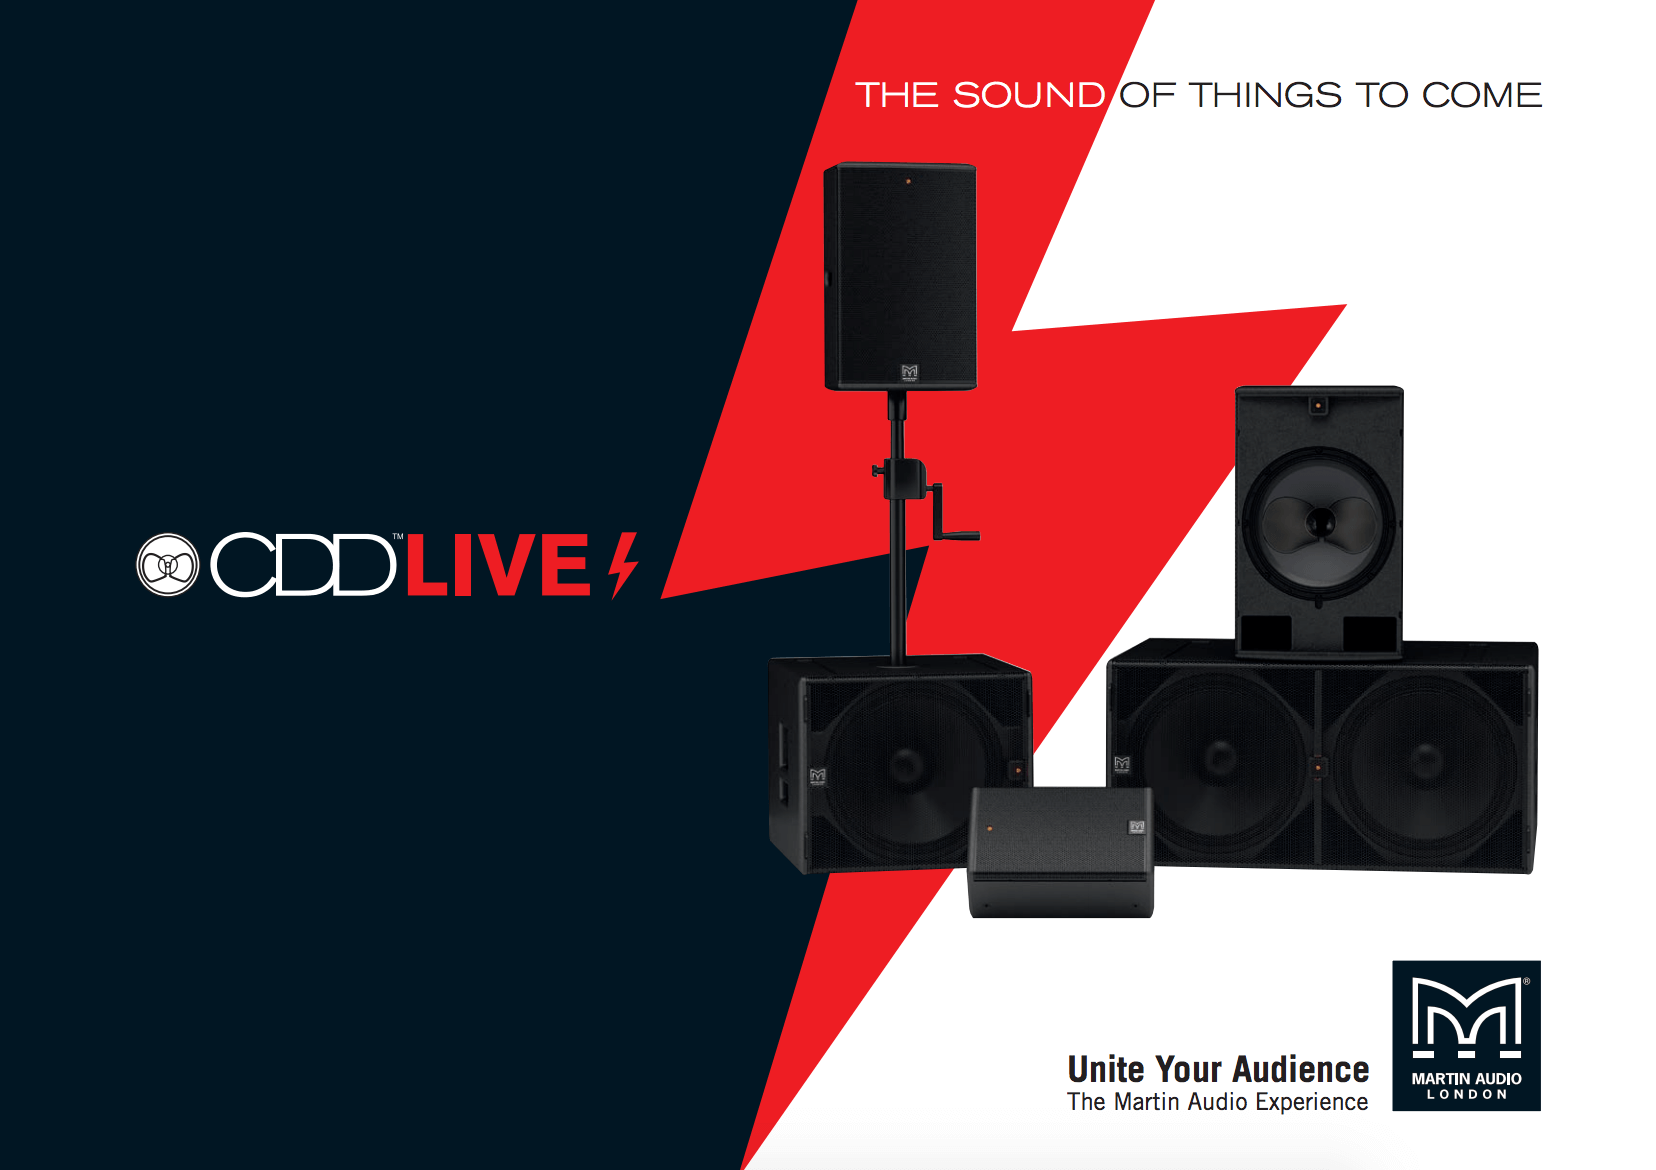 series loa martin audio cdd live